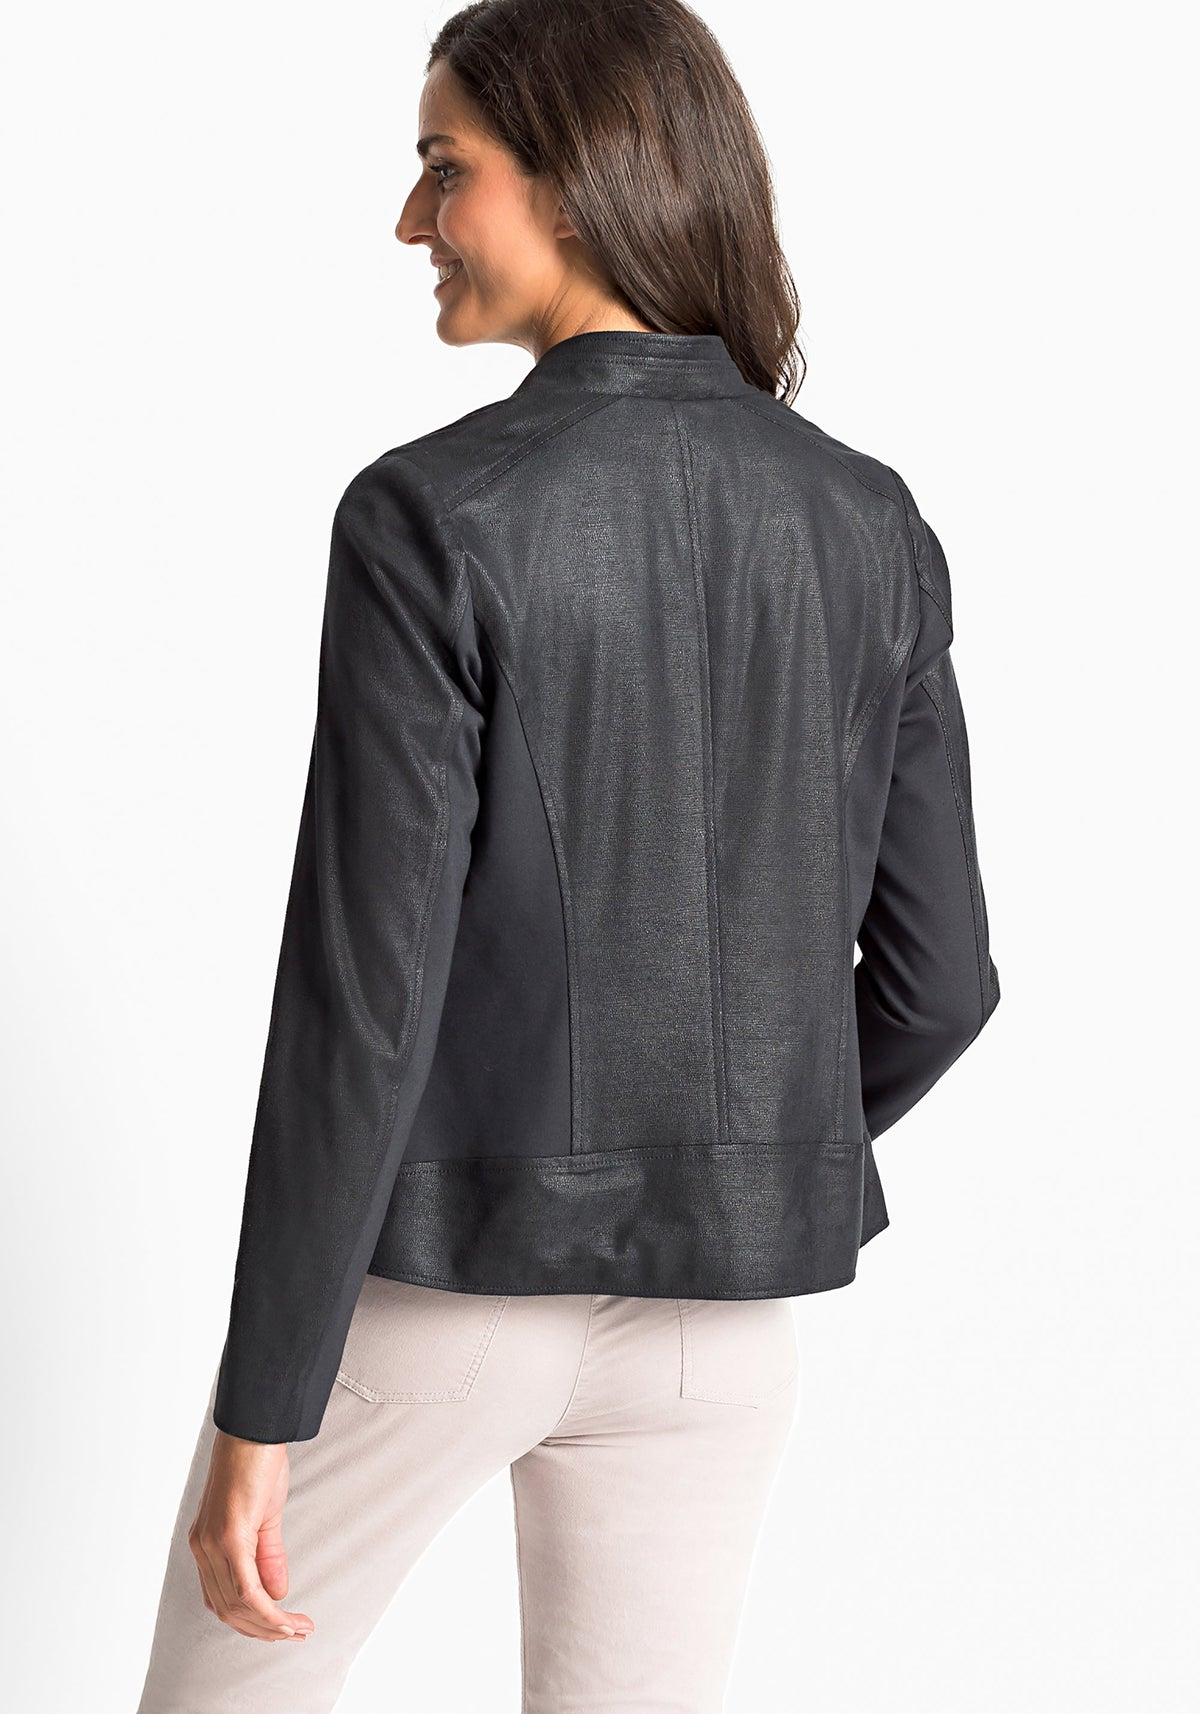 Tonal Micro Reptile Finish Zip Front Moto Jacket with Pockets